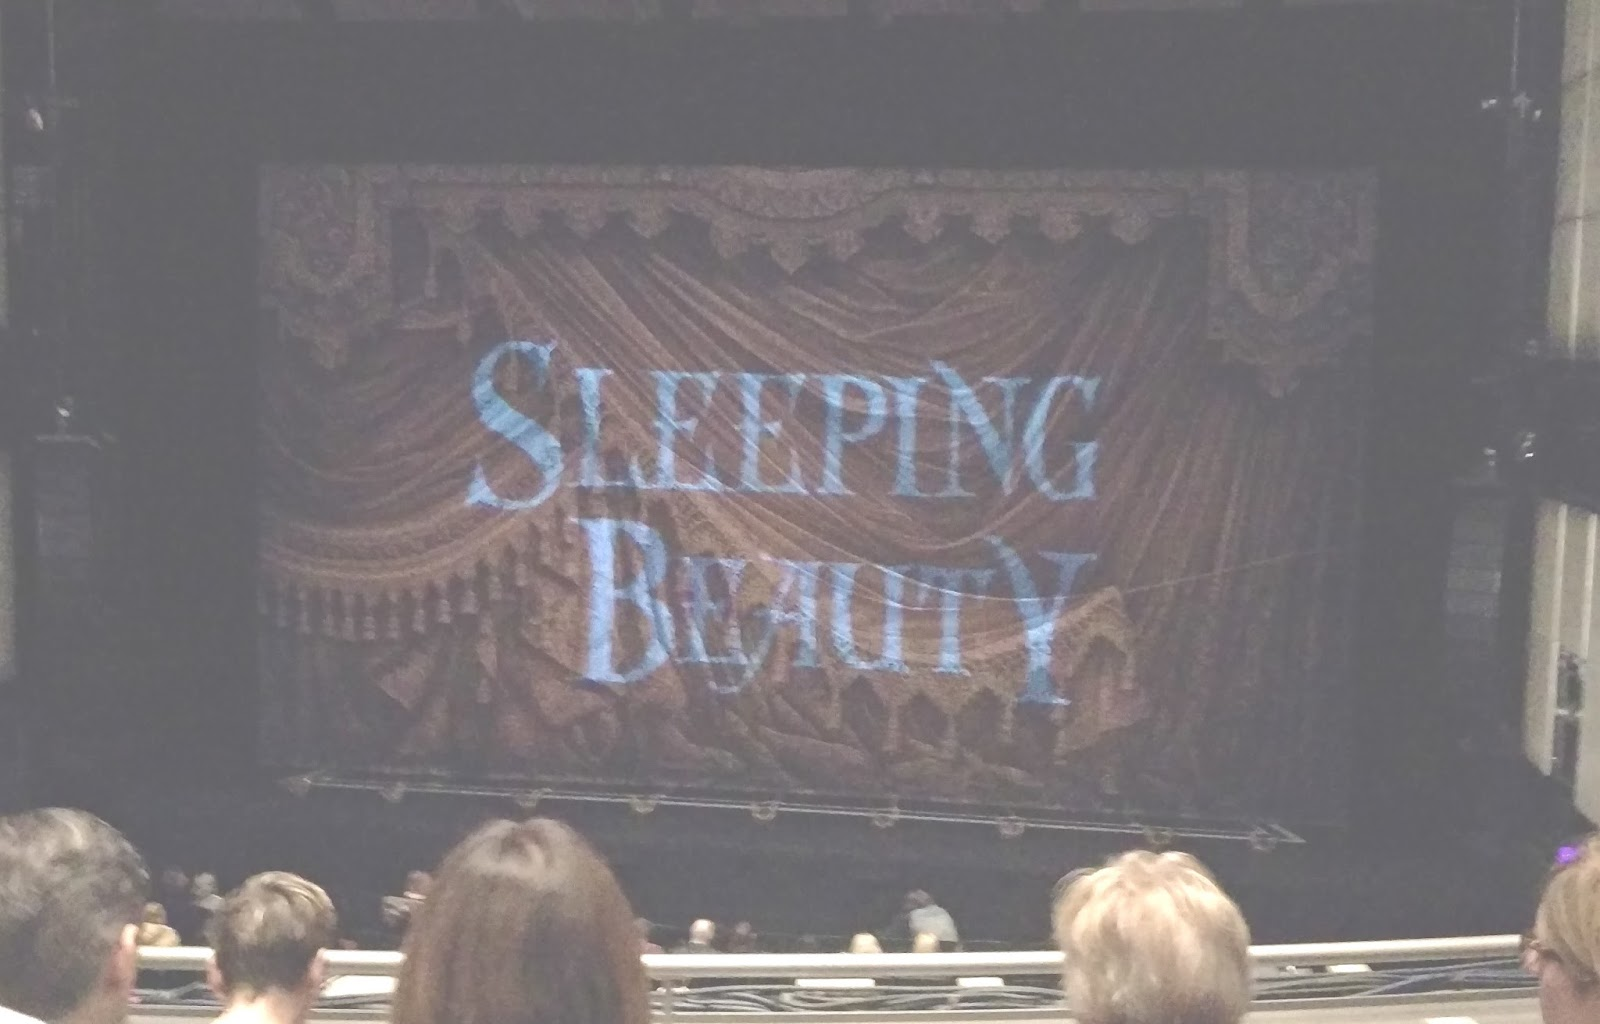 Matthew Bourne's Sleeping Beauty: A Gothic Romance Review